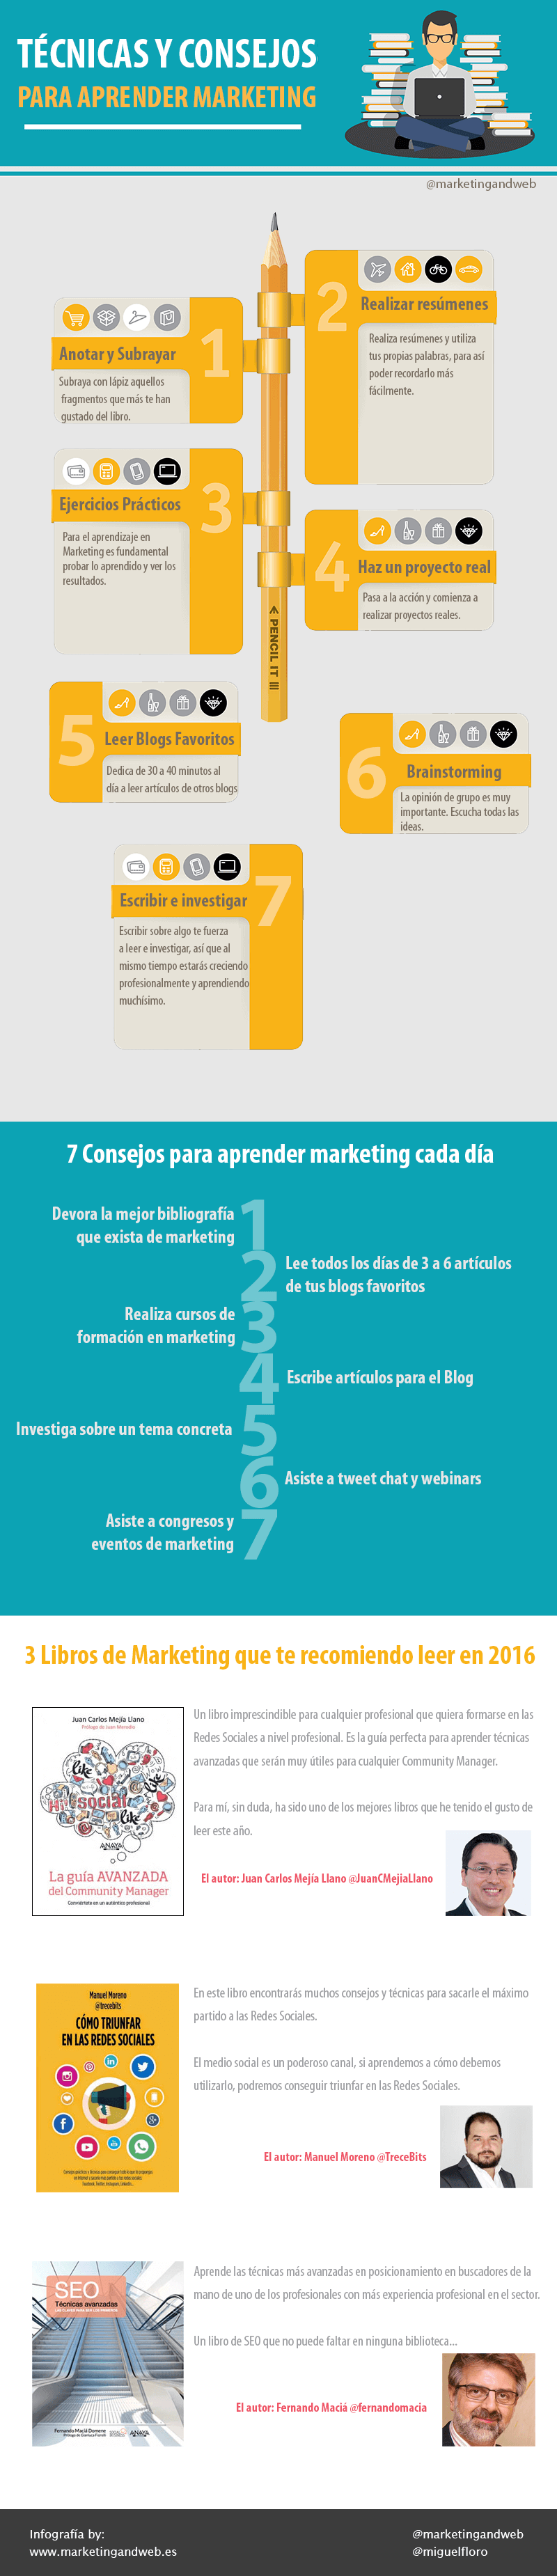 tecnicas-de-estudio-aprender-marketing-infografia-2 (1)